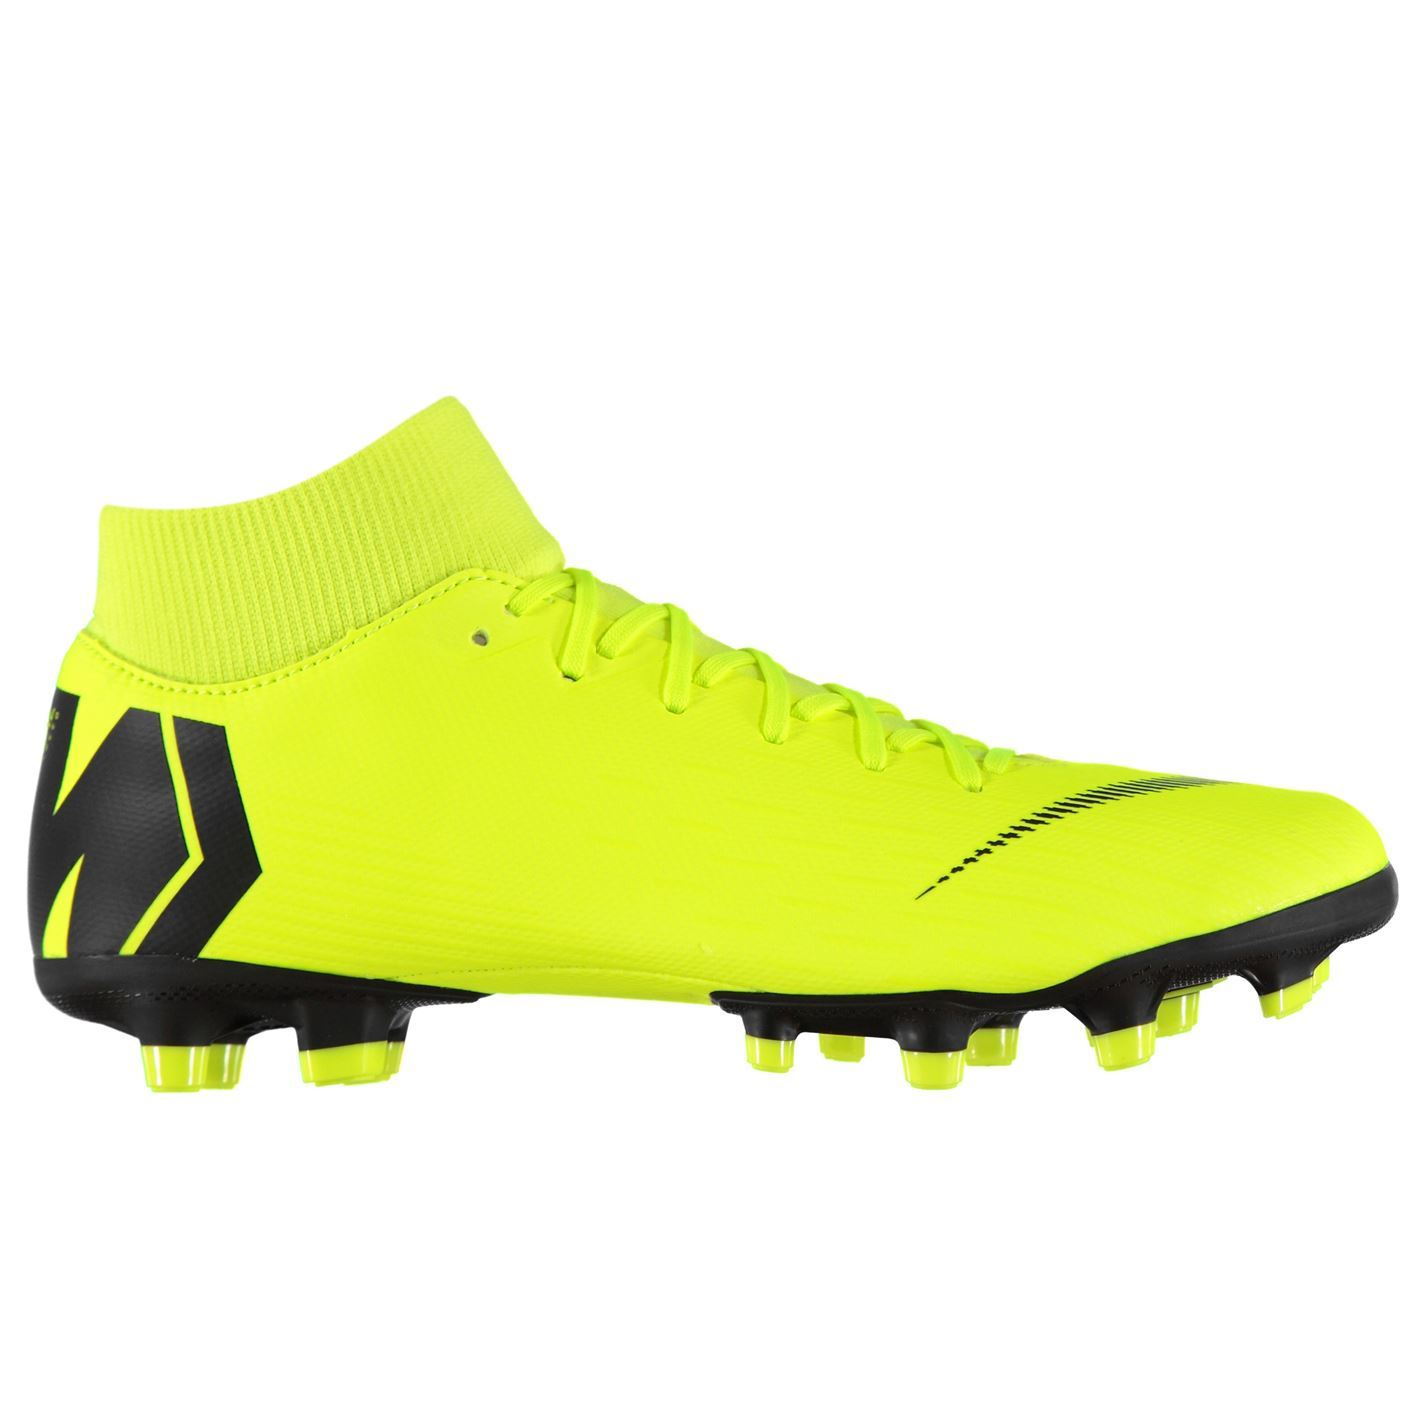 a489f0f55a2f29 ... Nike Mercurial Superfly Academy DF Firm Ground Football Boots Mens Soccer  Cleats